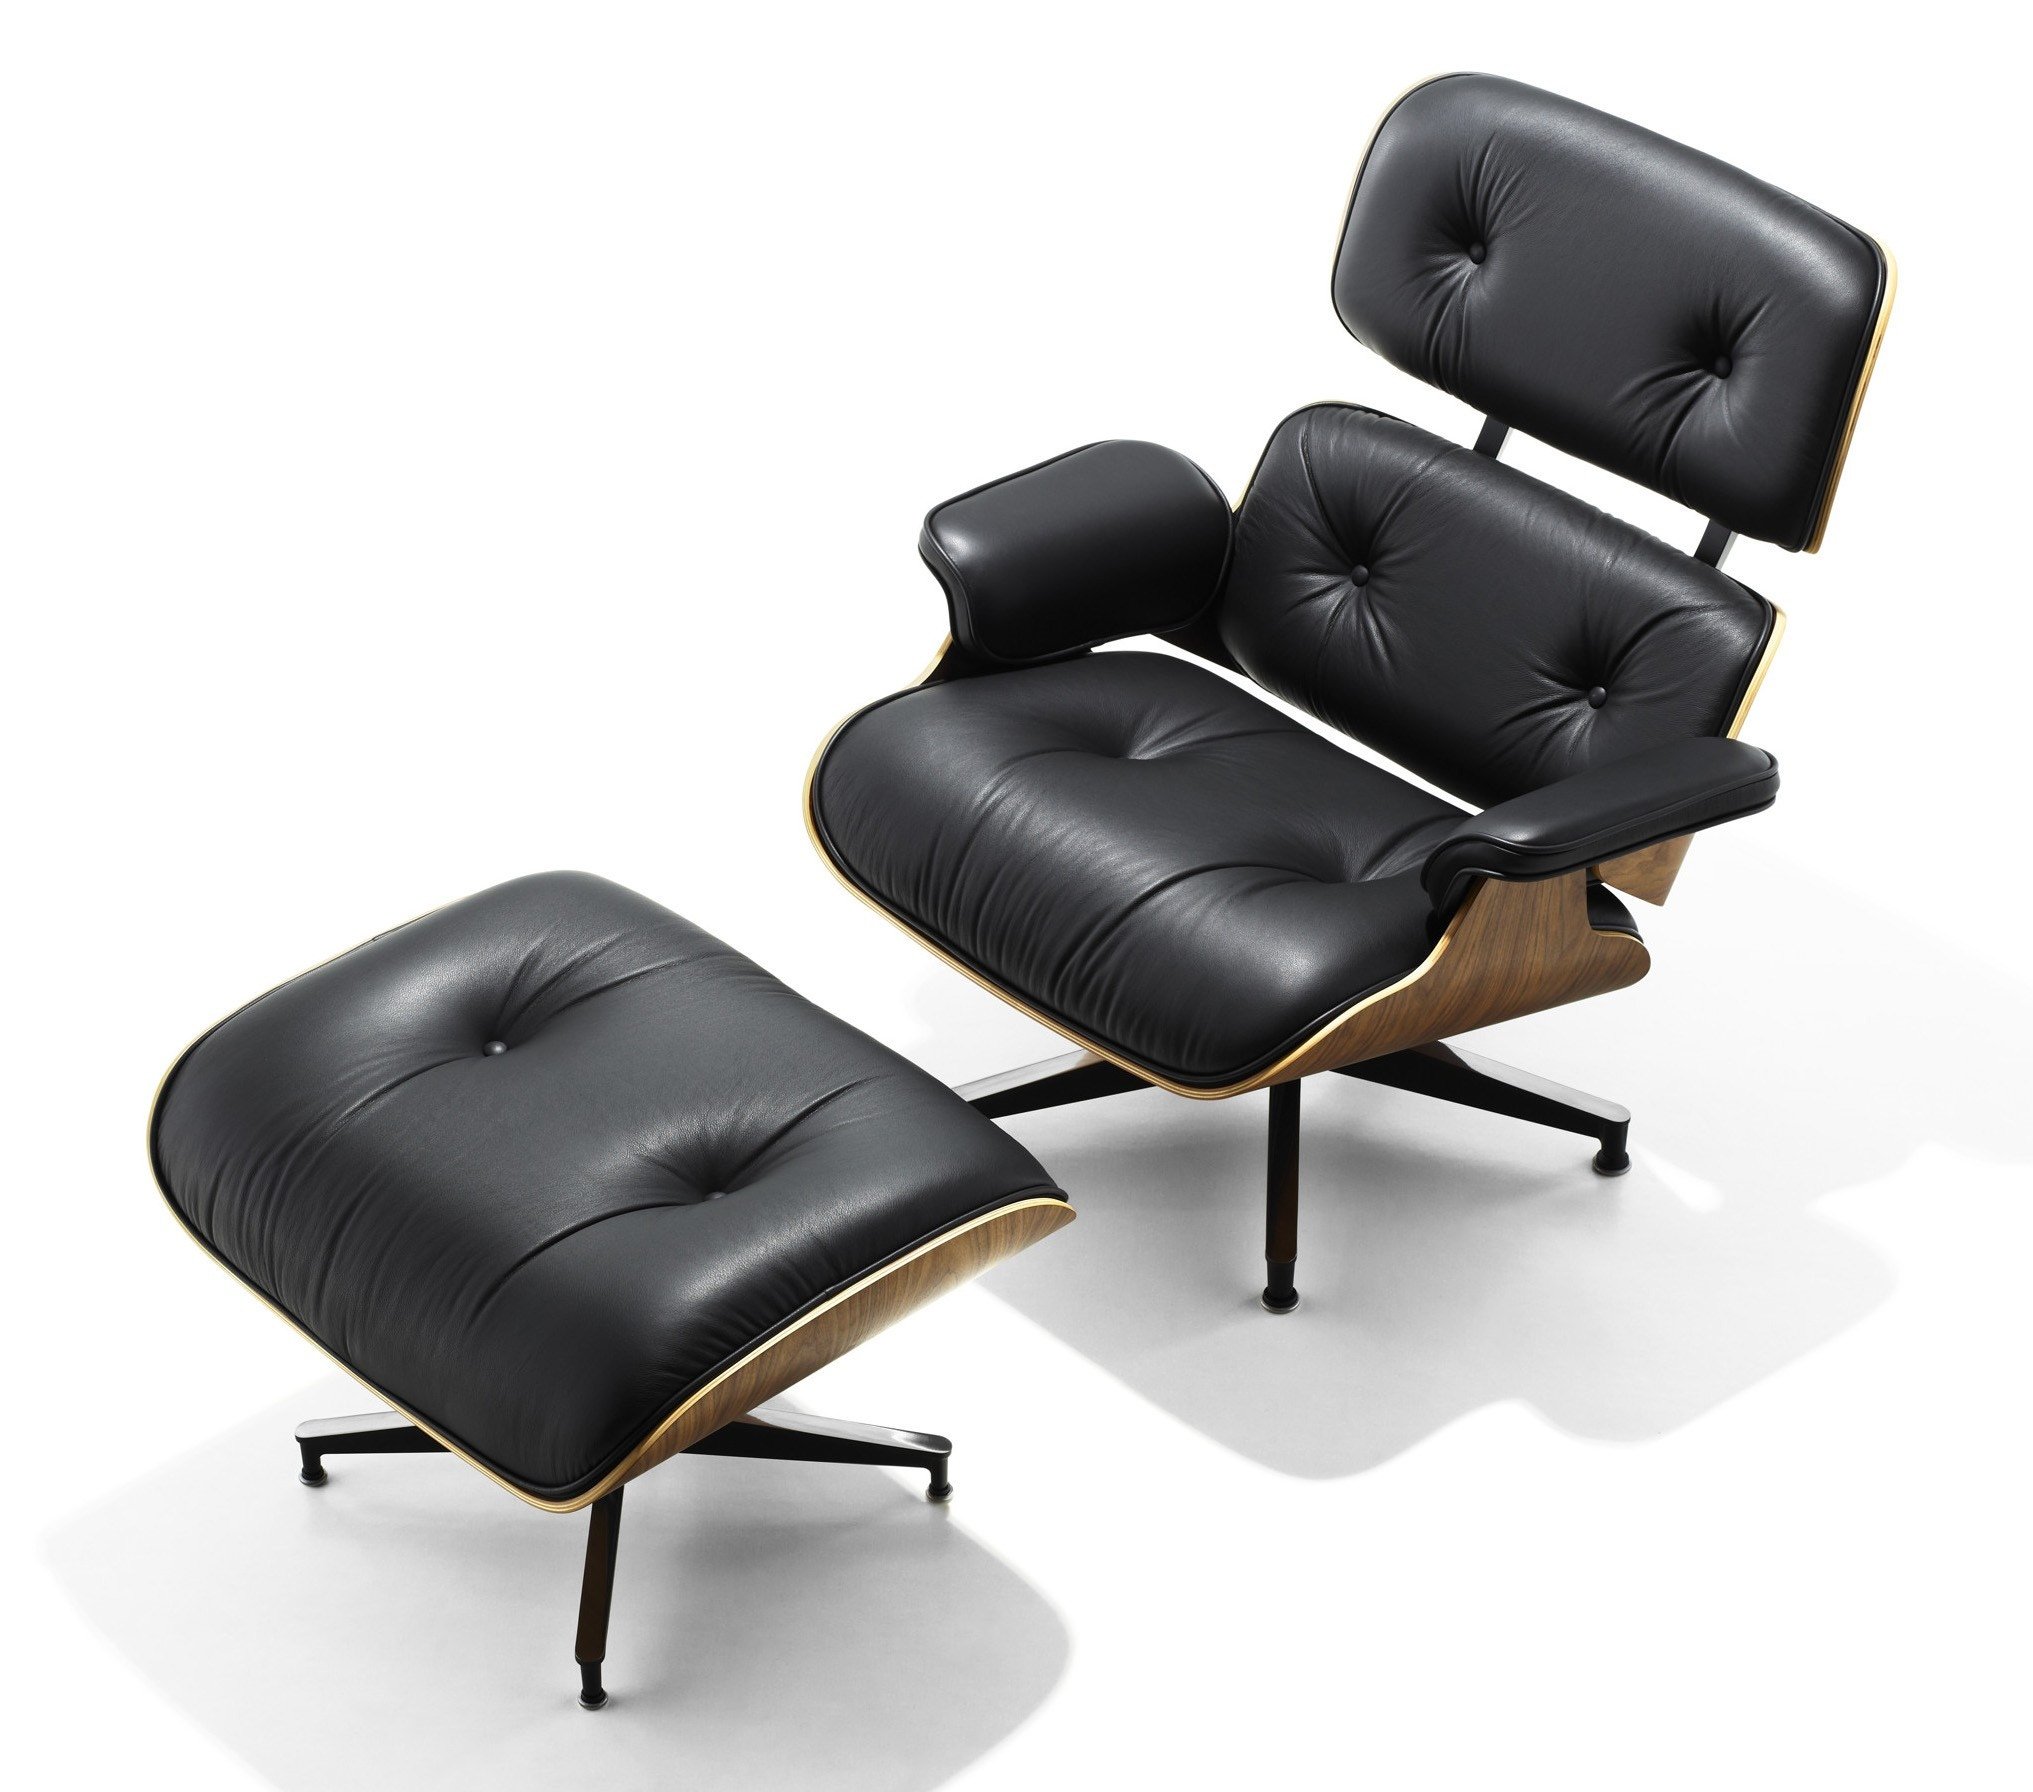 Herman Miller Eames® Lounge Chair and Ottoman  sc 1 th 211 & Herman Miller Eames® Lounge Chair and Ottoman - GR Shop Canada